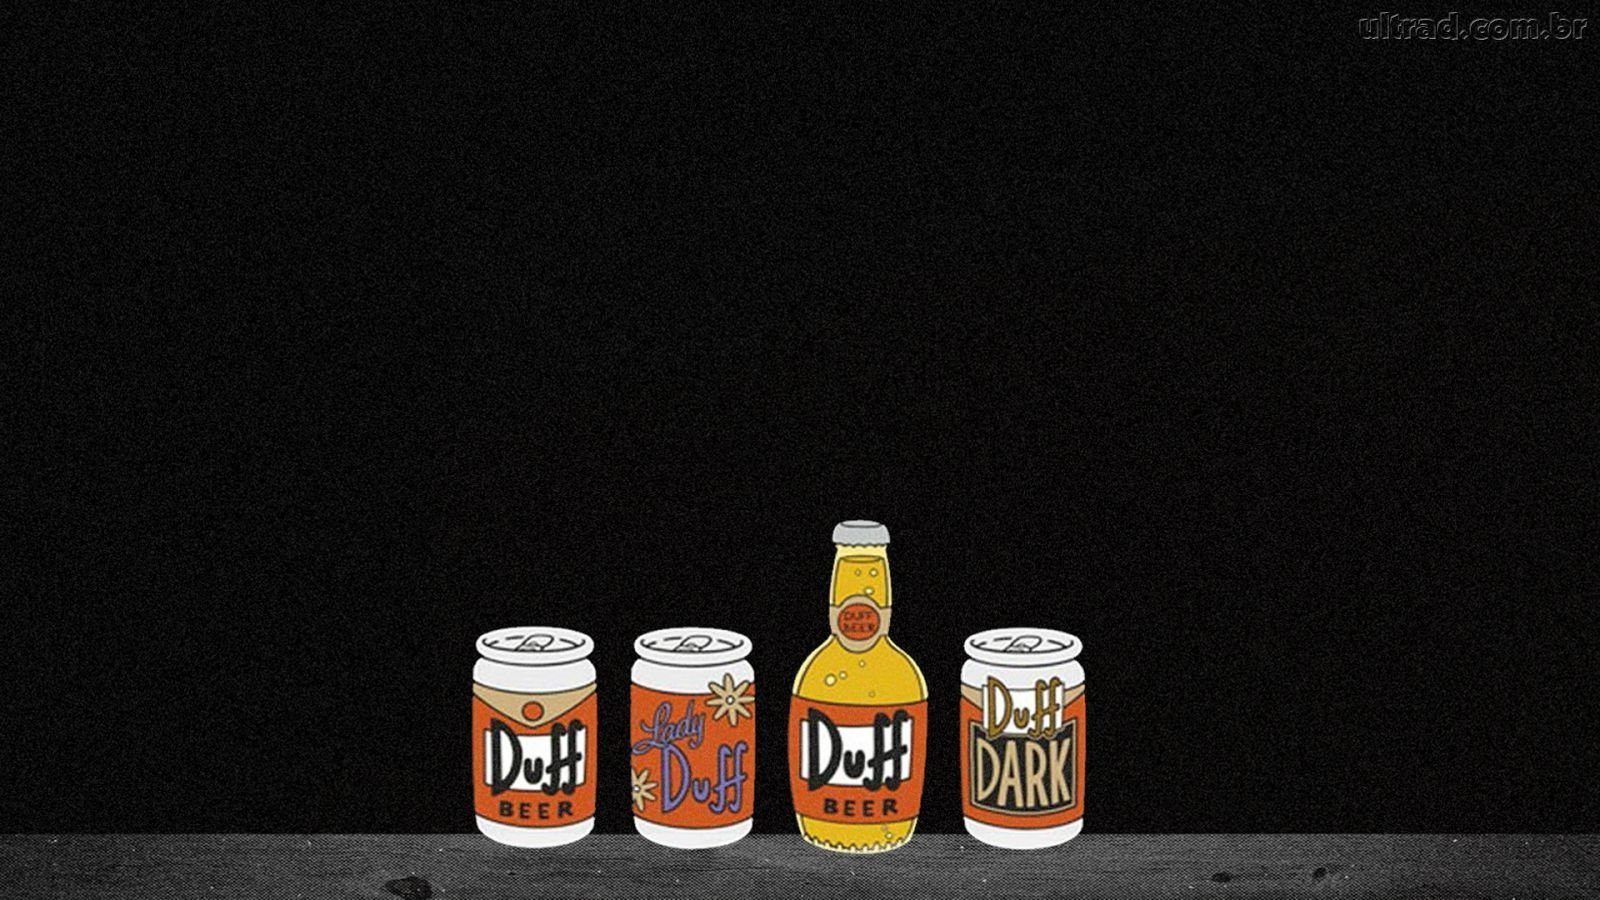 2 duff beer hd wallpapers background images wallpaper abyss